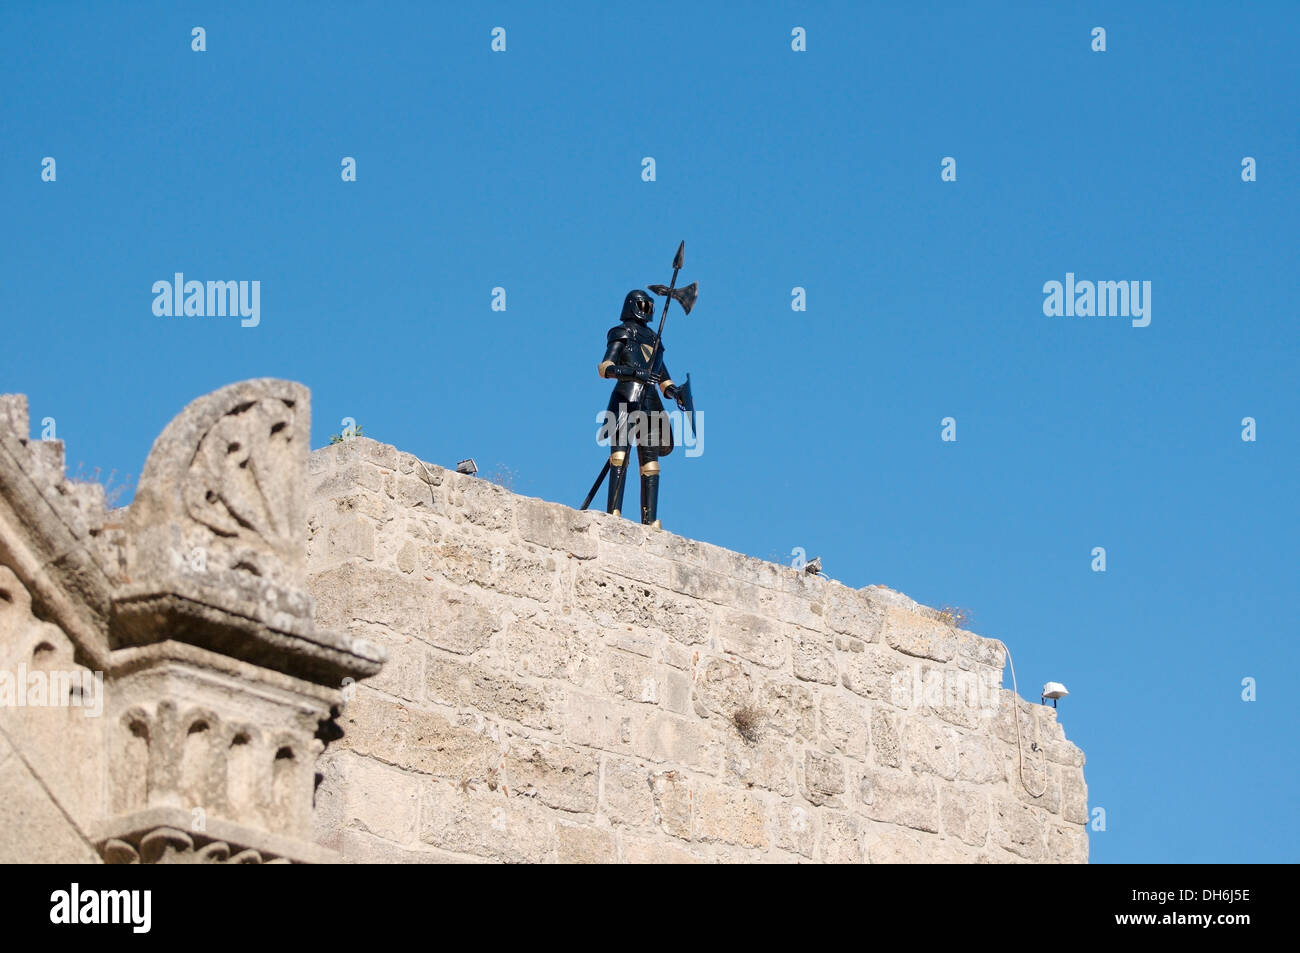 knight standing on the castle wall, island Rhodes, Greece - Stock Image